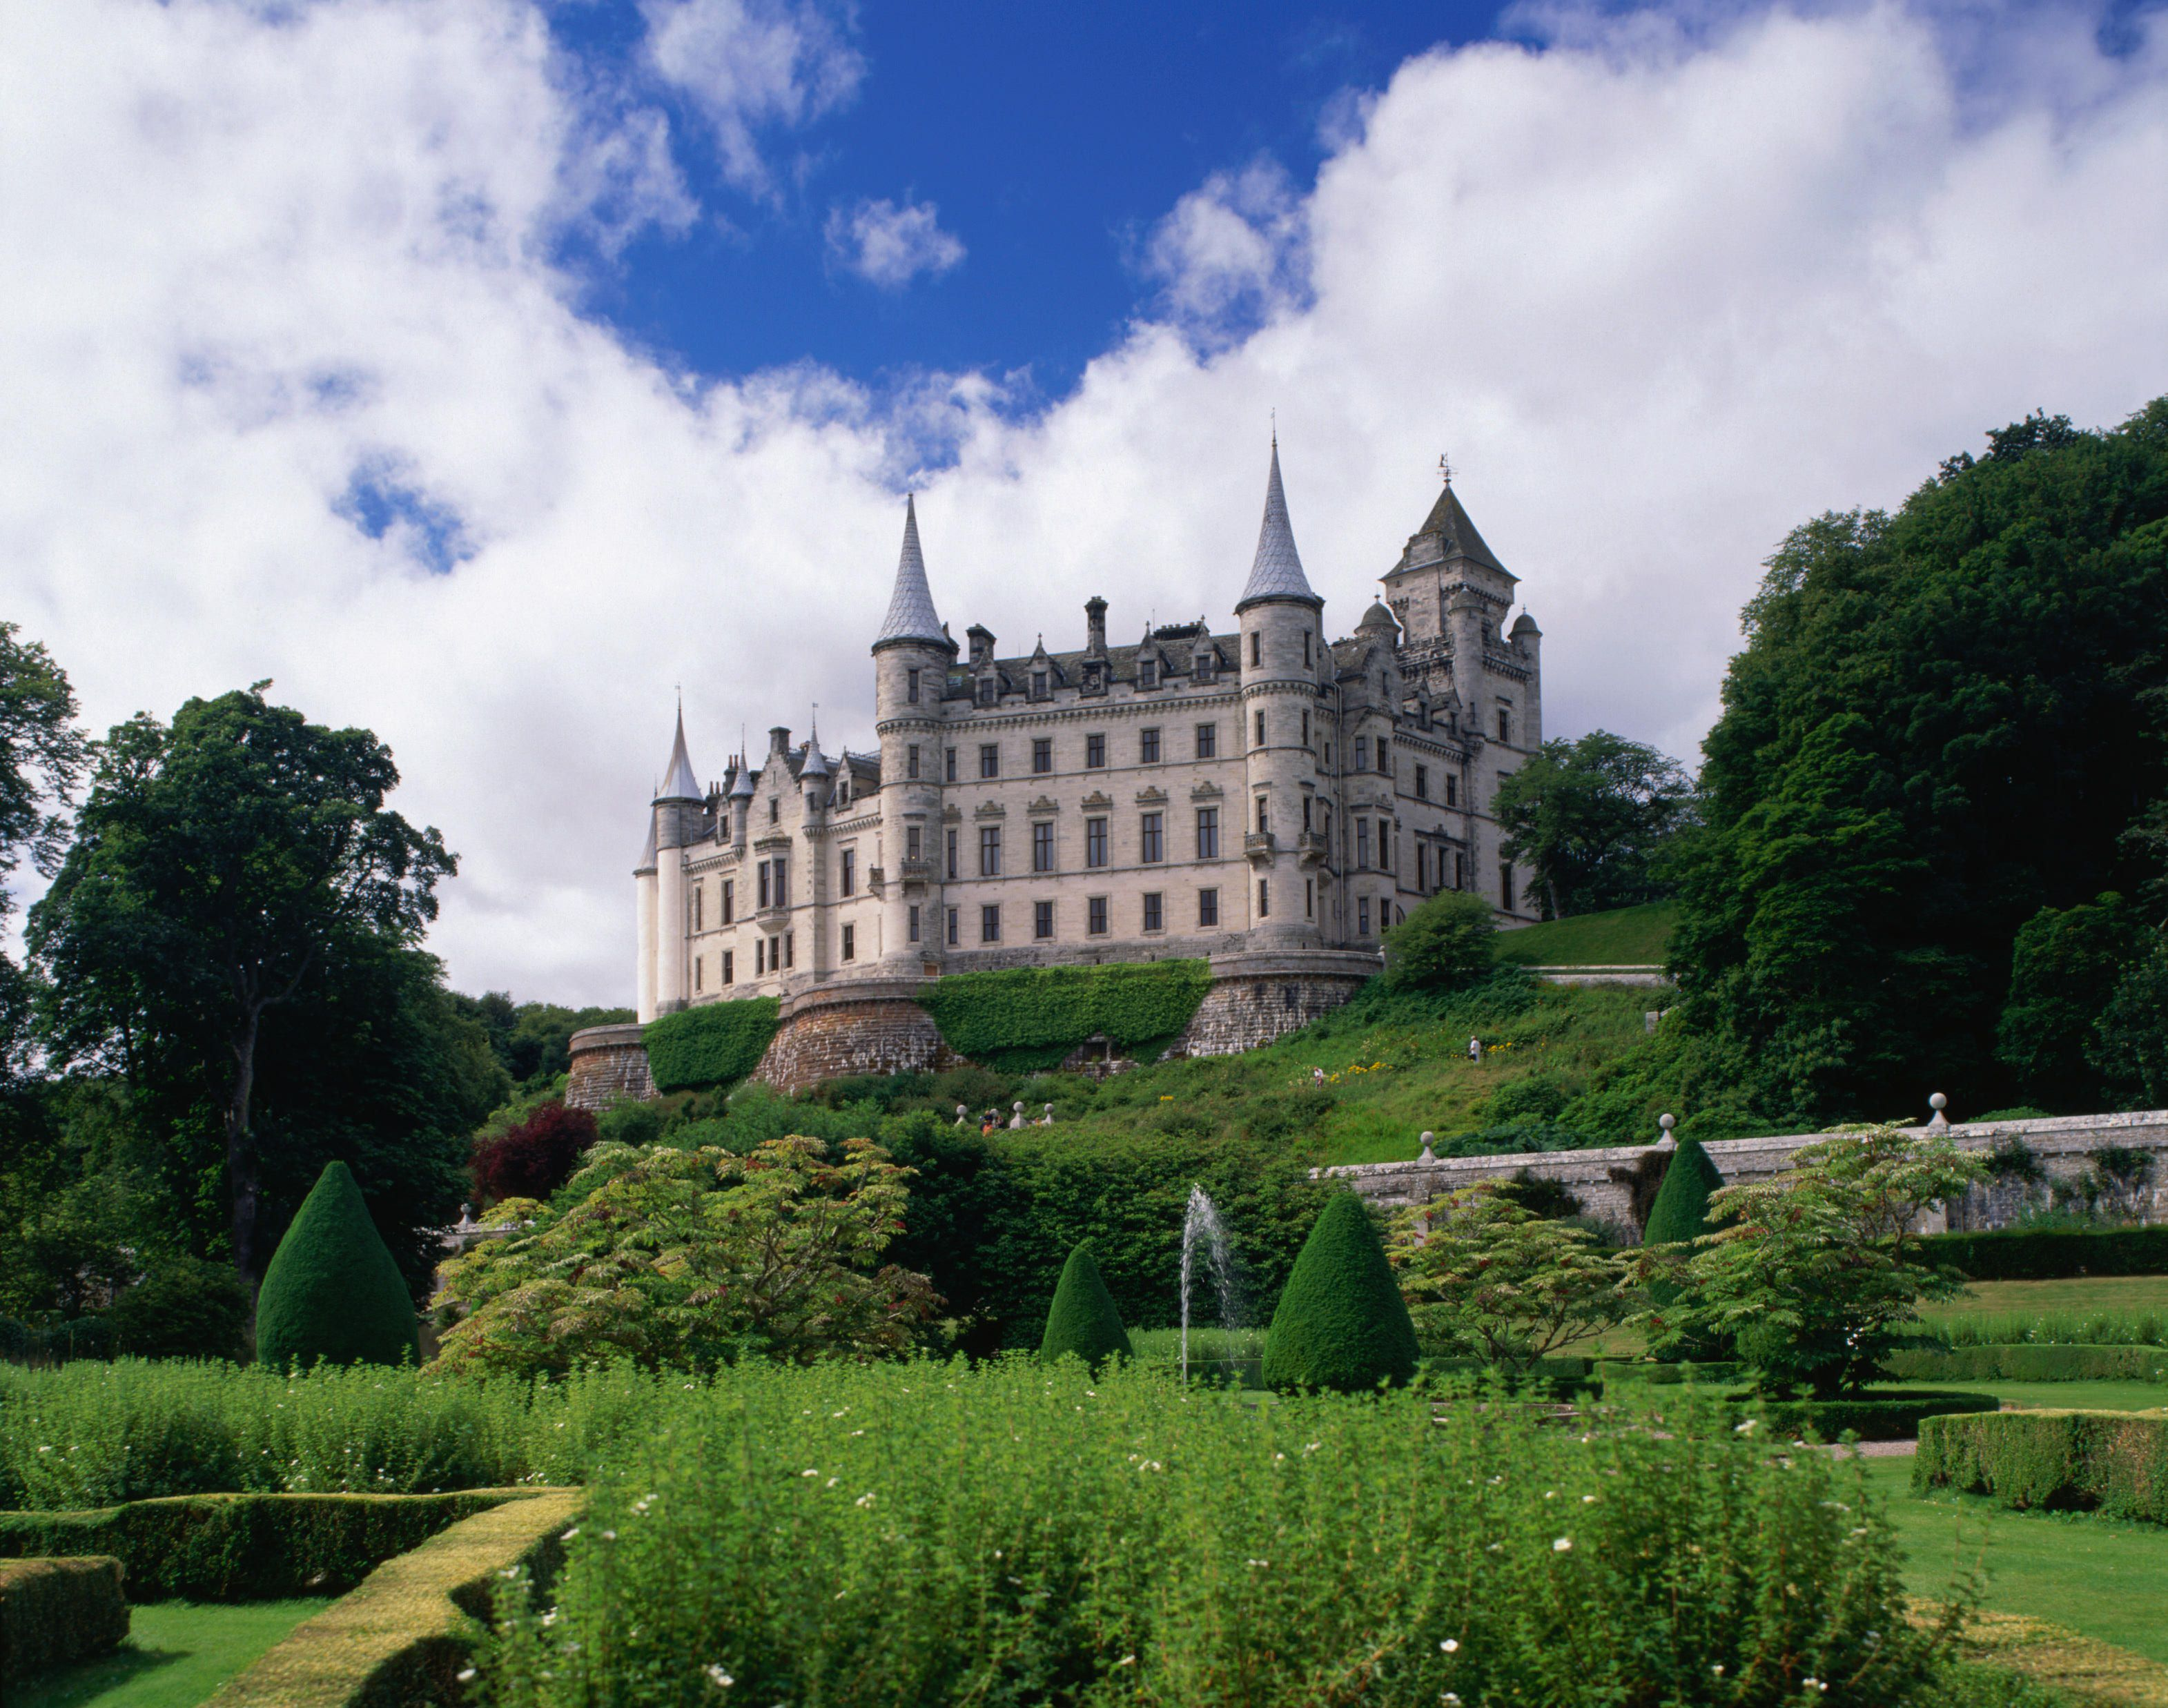 Dunrobin Castle, the largest house in the Highlands, stands overlooking landscaped gardens - Scotland